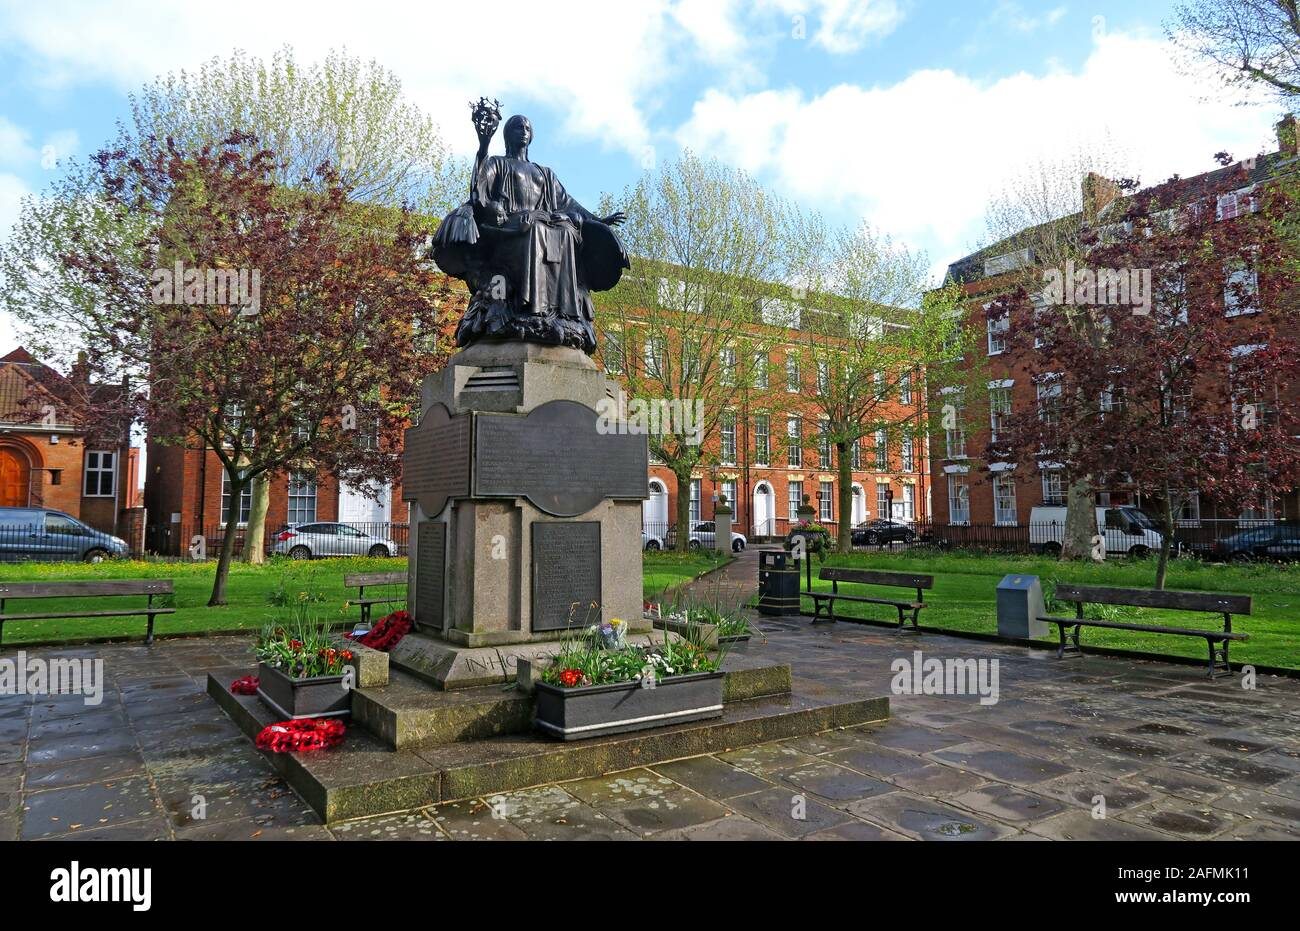 HotpixUK,@HotpixUK,GoTonySmith,Bridgwater,Somerset,SDC,Sedgemoor,Sedgemoor District Council,South West England,England,UK,South West,town,TA6,King Square,listed,grade II,plinth,W Morris Art Bronze Foundry,bronze,sculpture,garden,gardens,Sir George Frampton,Sedgemoor District Council in the background,IN HONOUR OF THE MEN OF BRIDGWATER WHO GAVE THEIR,Georgian square